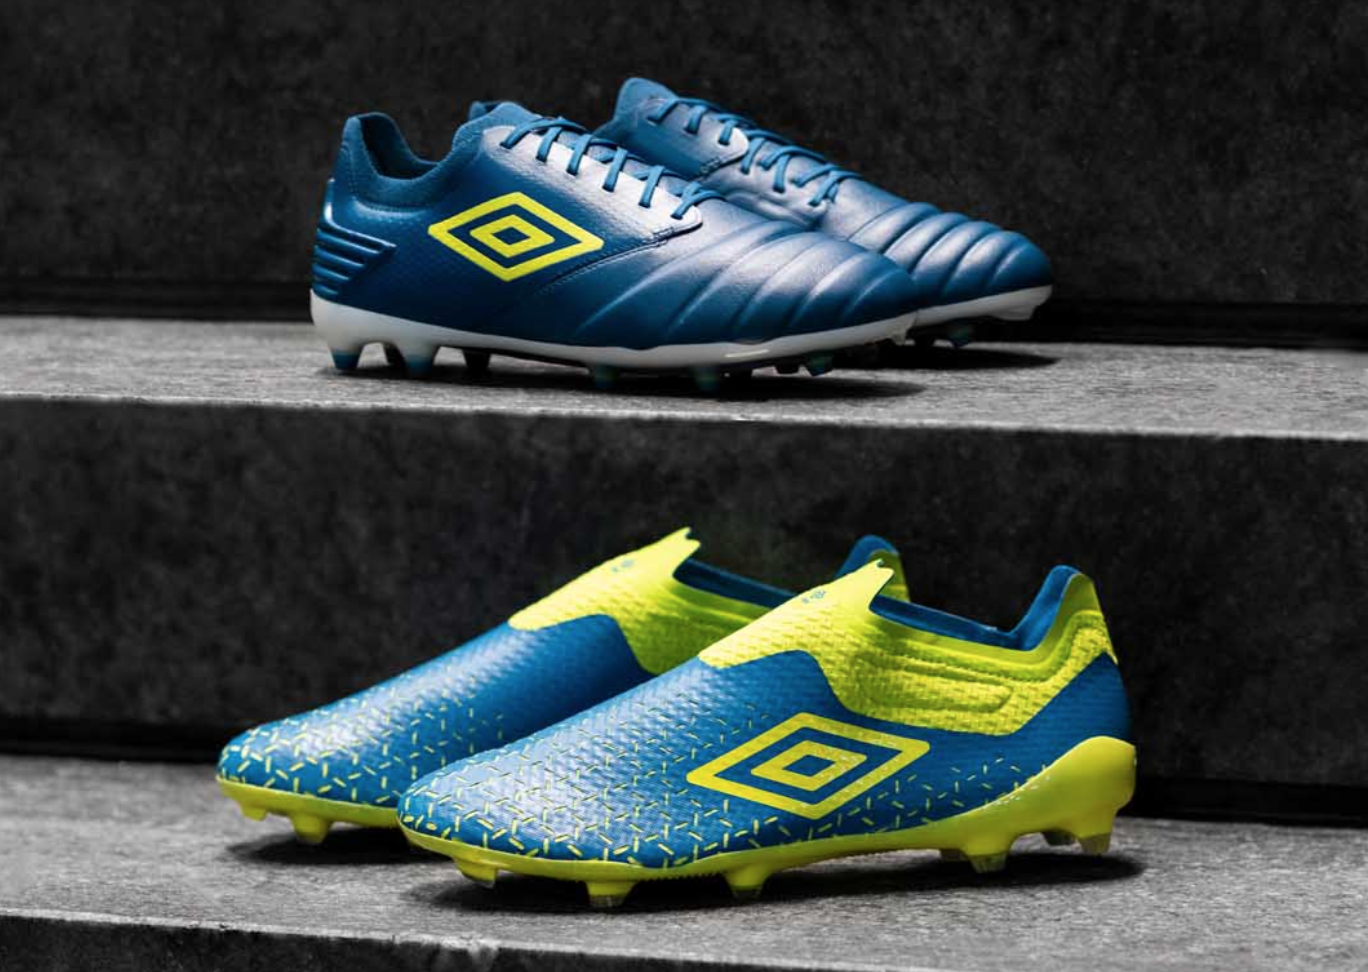 """Umbro Launch The """"Blue Sapphire/Lime Punch/White"""" Pack"""